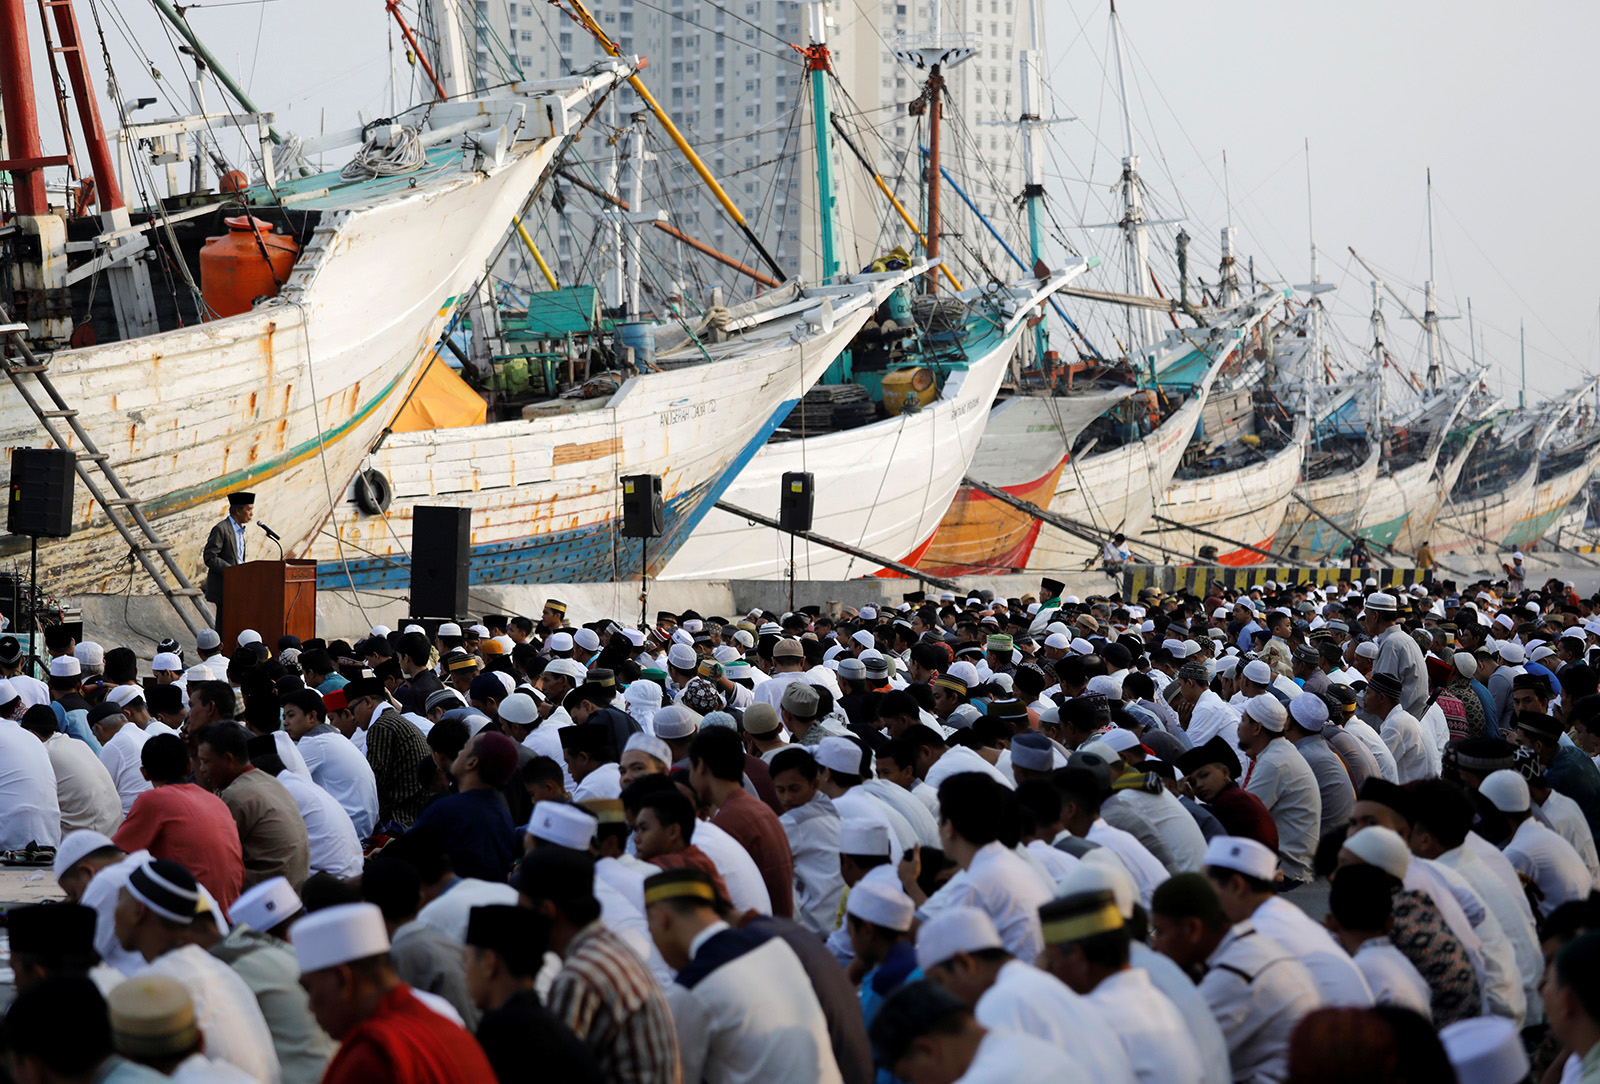 Muslims attend prayers to celebrate Eid al-Fitr, marking the end of the holy fasting month of Ramadan, at Sunda Kelapa port in Jakarta